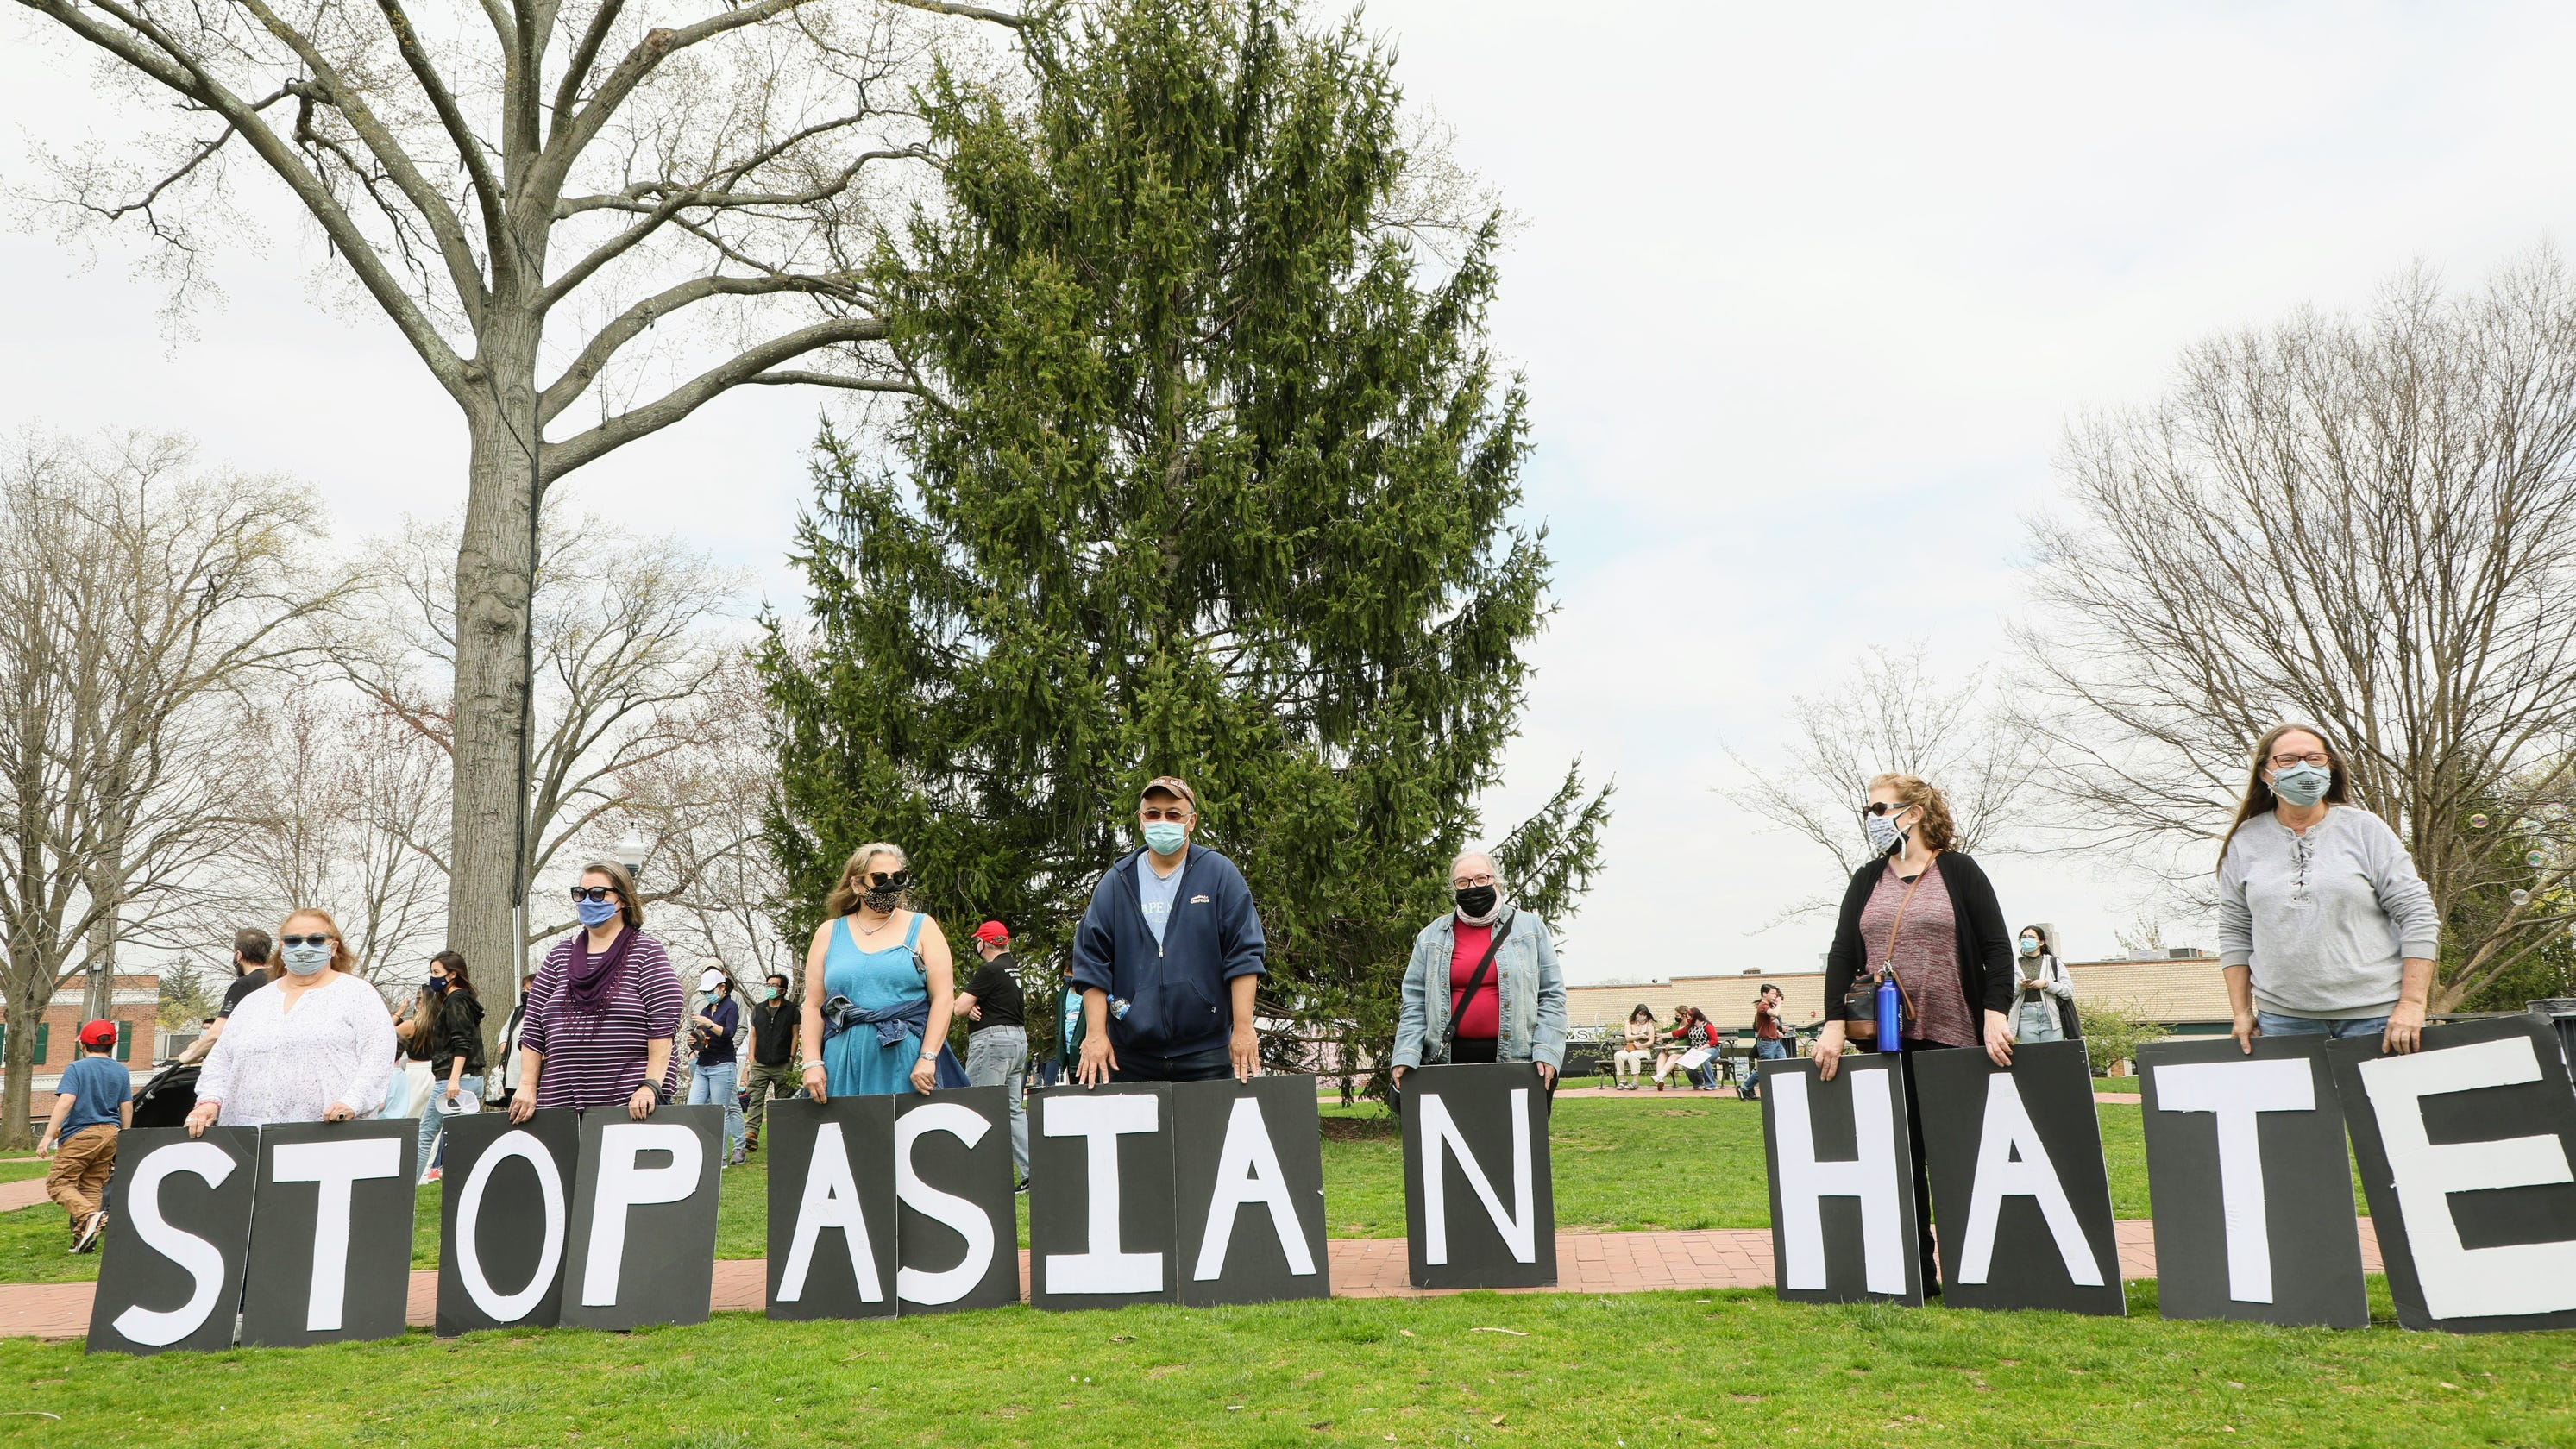 Anti-Asian-hate rally attracts hundreds in Ridgewood, but also protesters against mayor